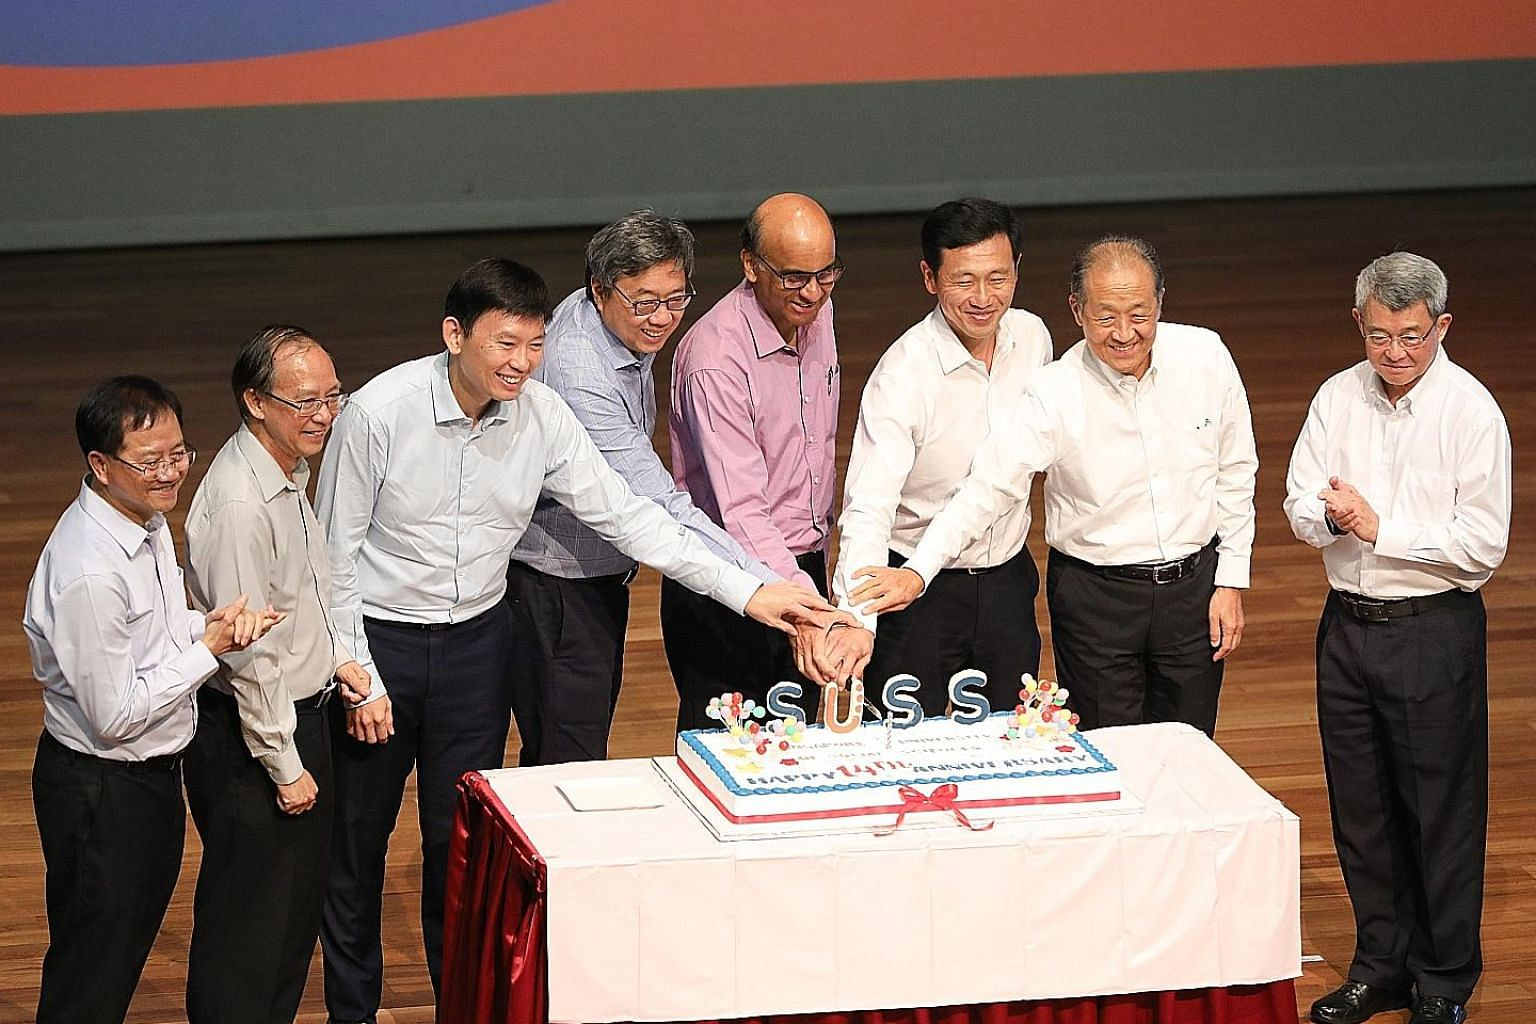 Attending the Singapore University of Social Sciences' 14th anniversary celebration yesterday were (from left): Institute for Adult Learning executive director Lee Wing On; SUSS president Cheong Hee Kiat; Senior Minister of State for Education Chee H